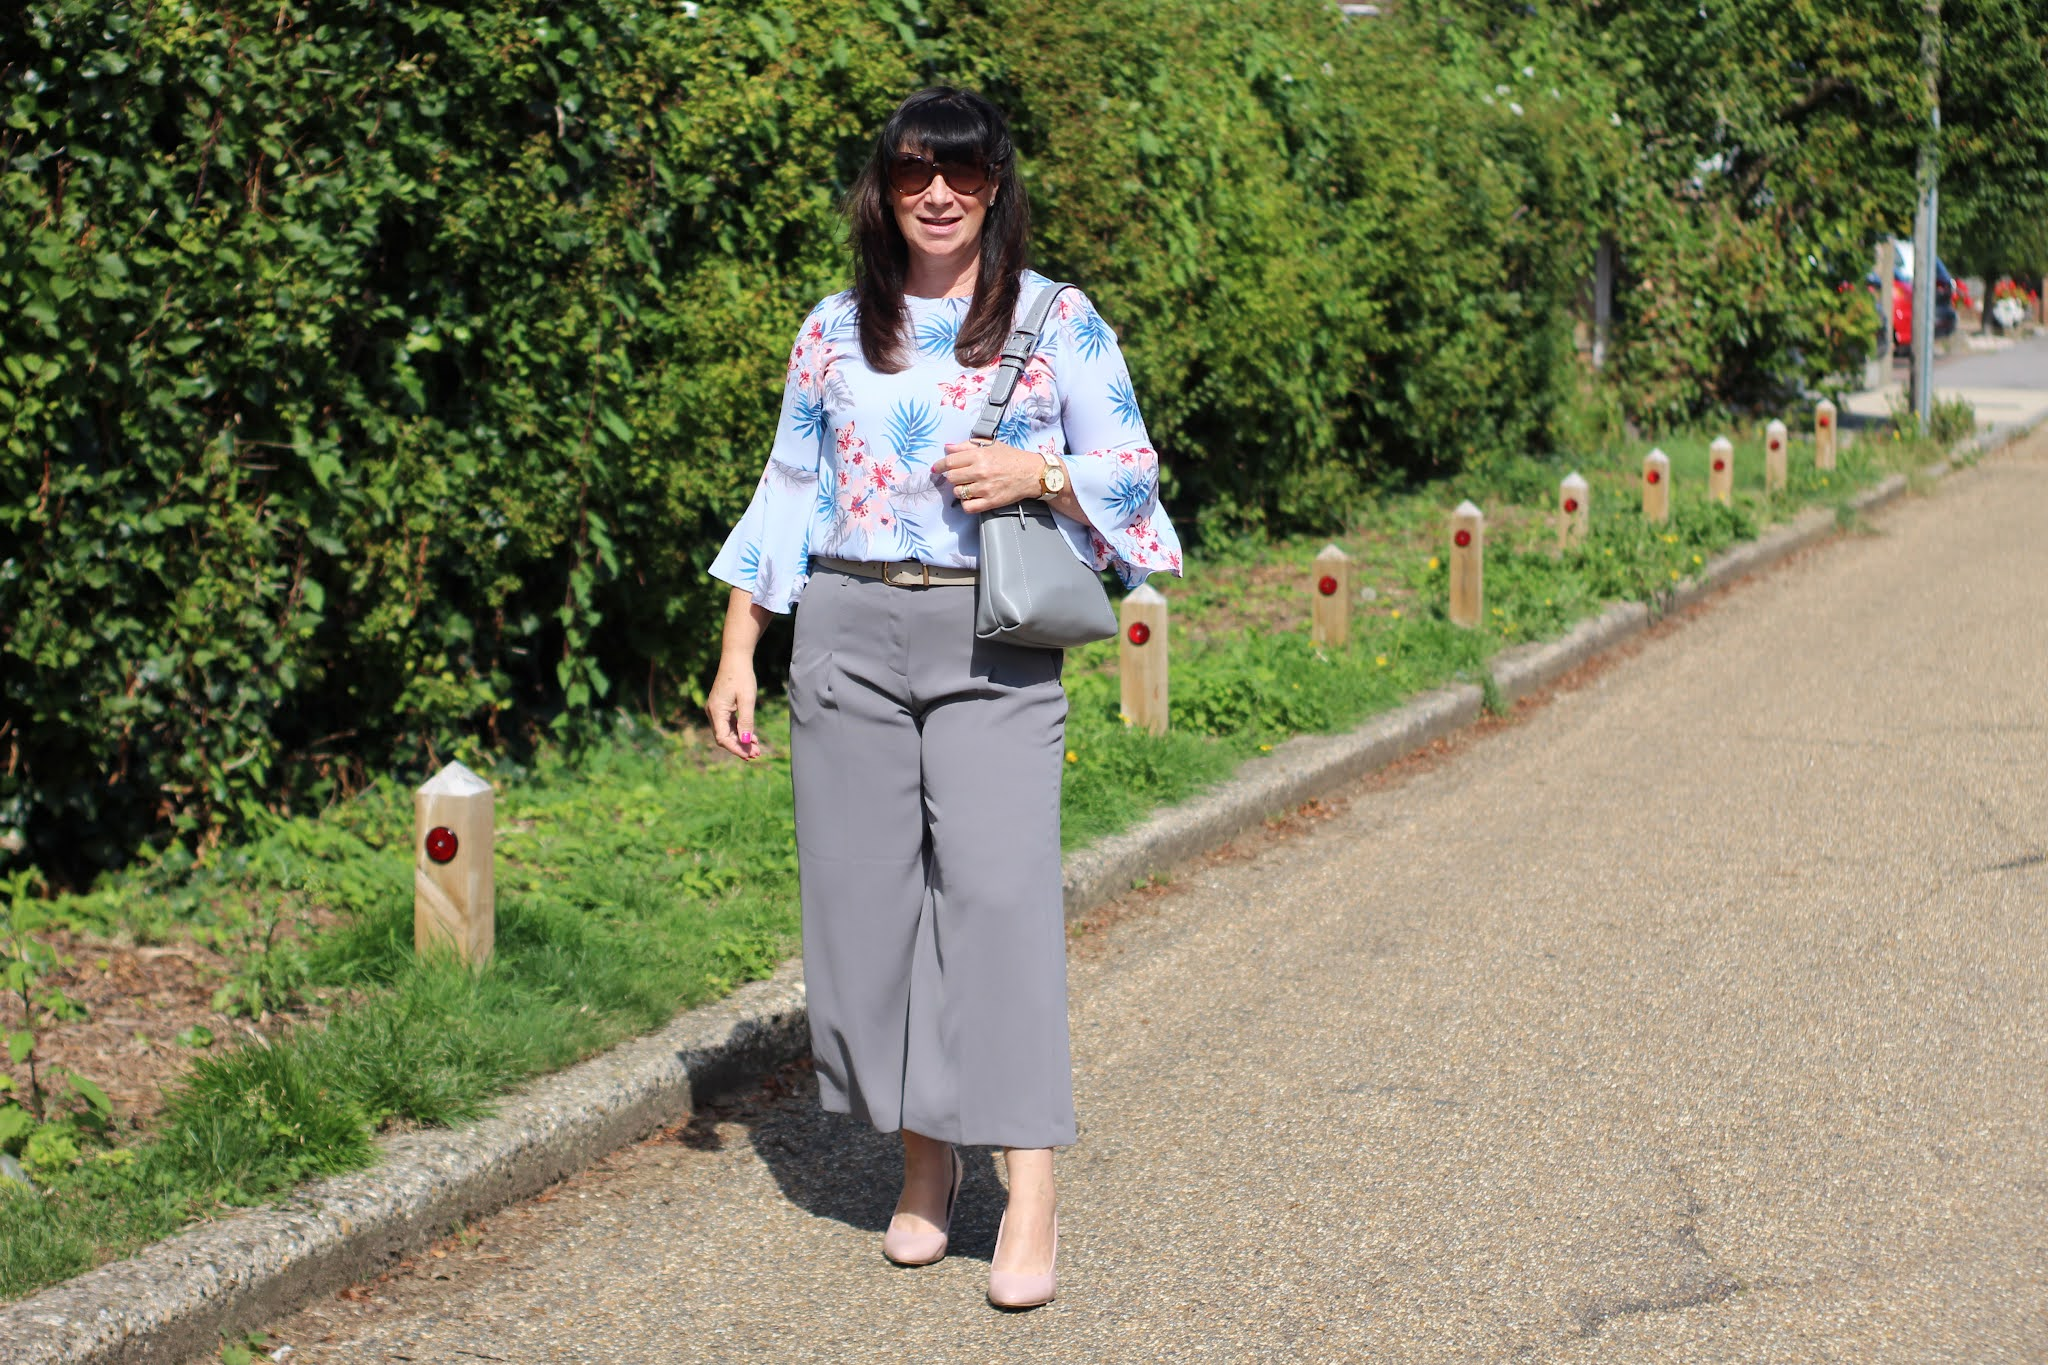 Jacqui from Mummabstylish in top with statement sleeves